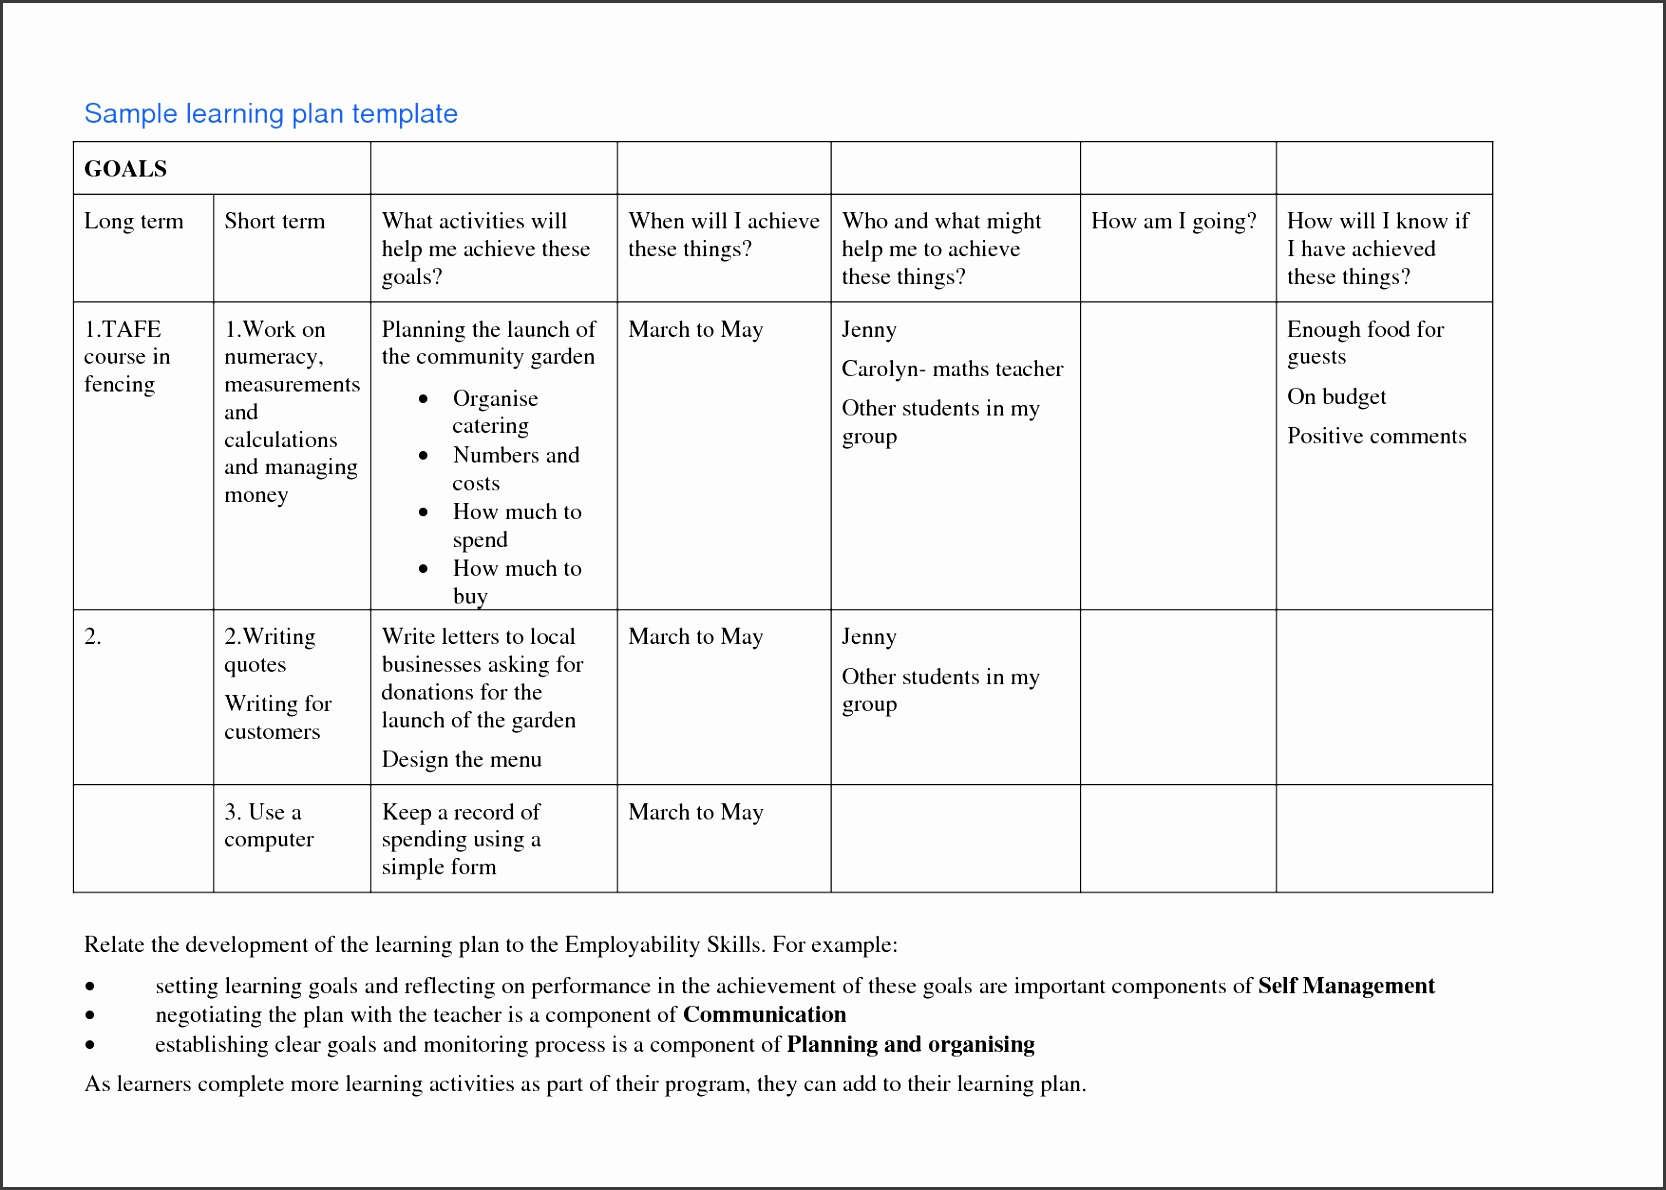 Sample Learning Plan Template